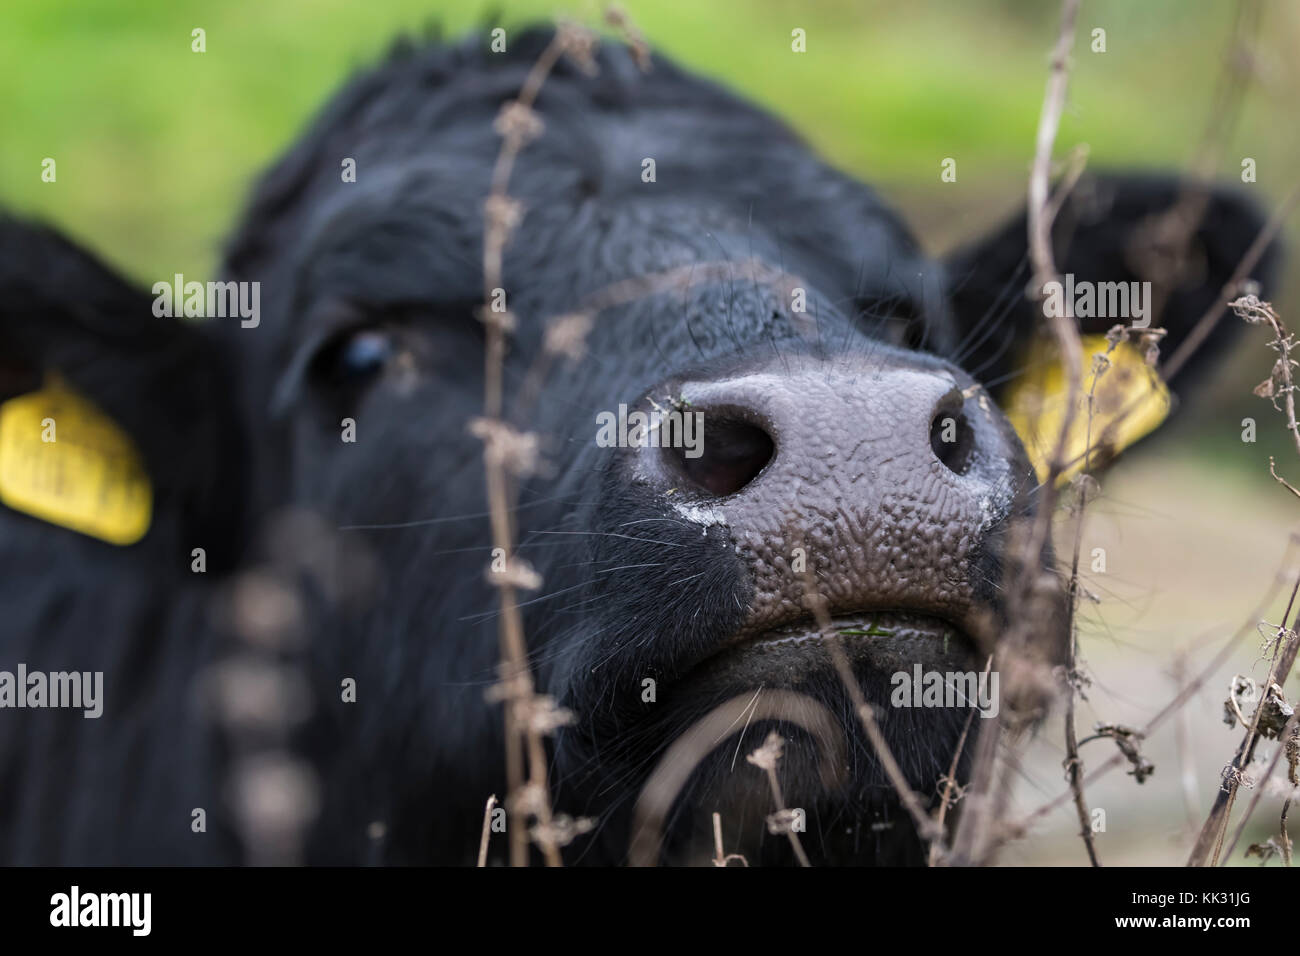 Head and face of a cow, focused on it's nose, looking at the camera. - Stock Image